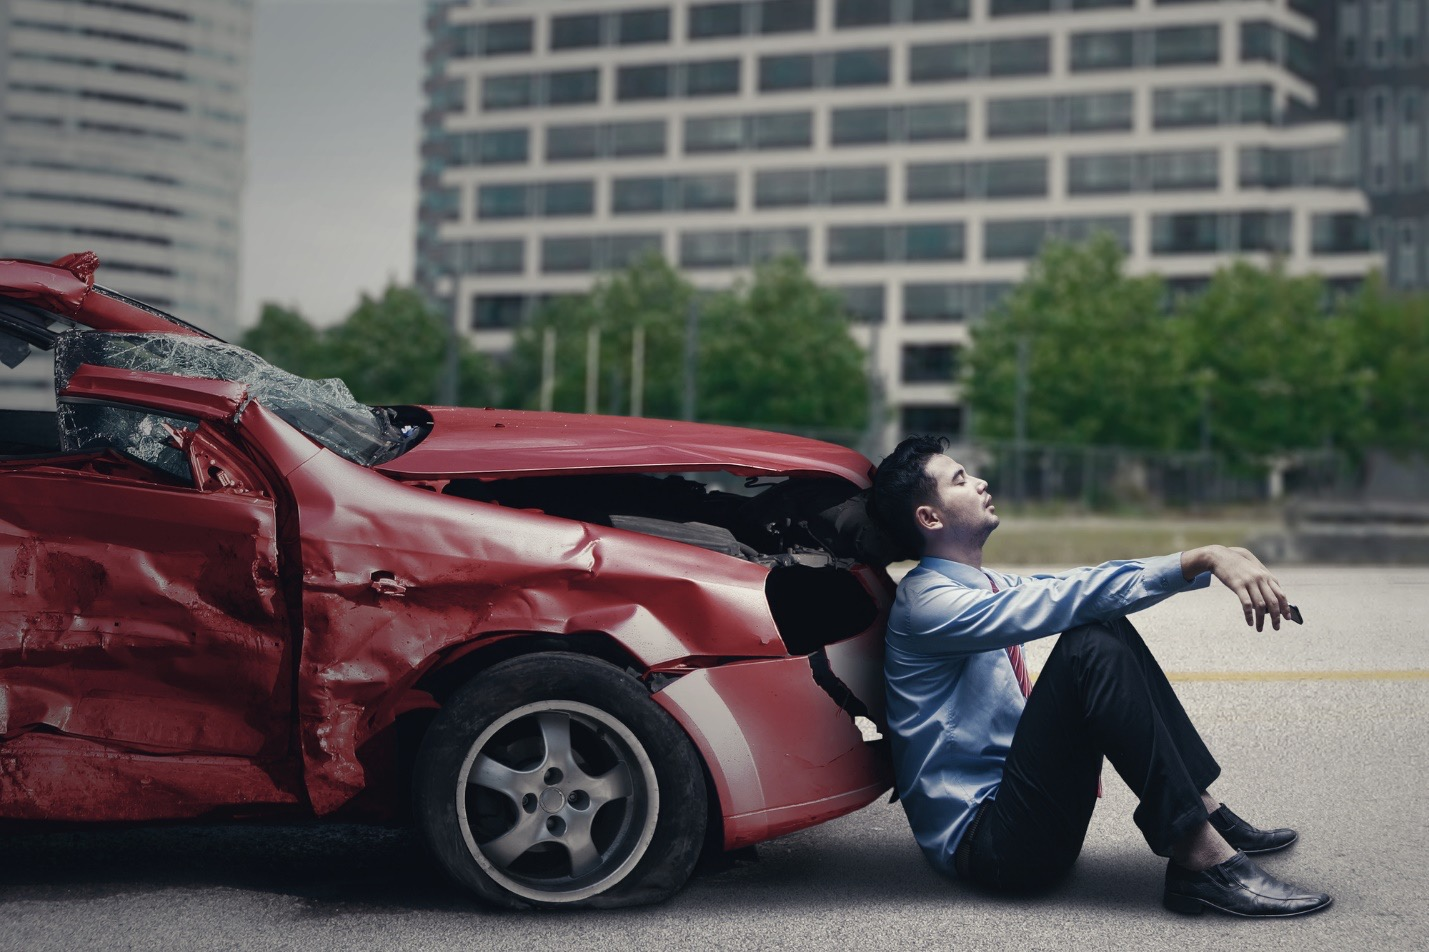 Why One Should Hire a Traffic Collision Lawyer Right After an Accident?